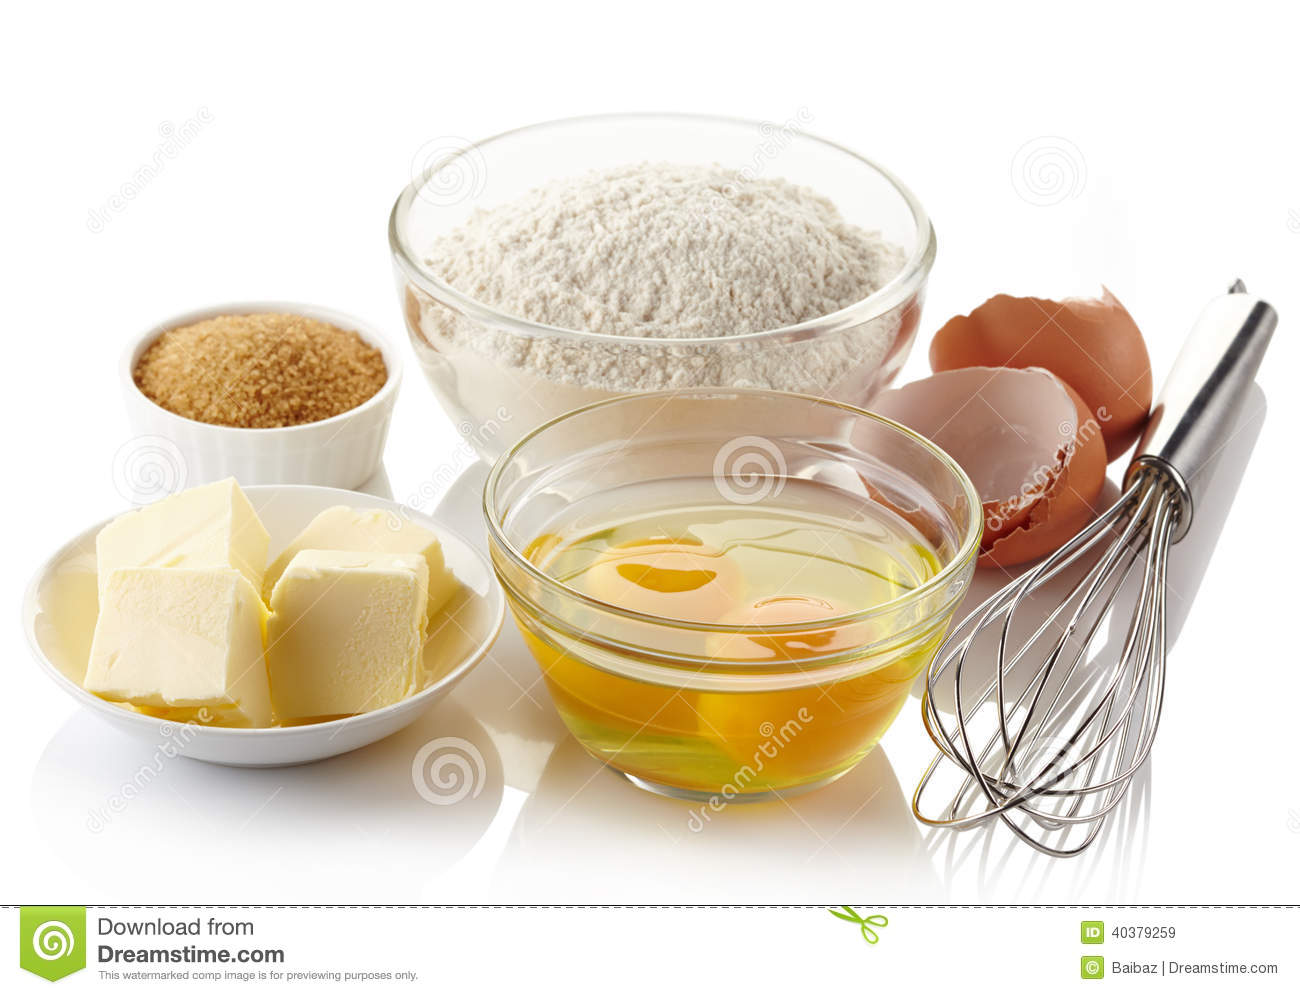 Ingredients For Baking Cake Stock Photo - Image: 40379259